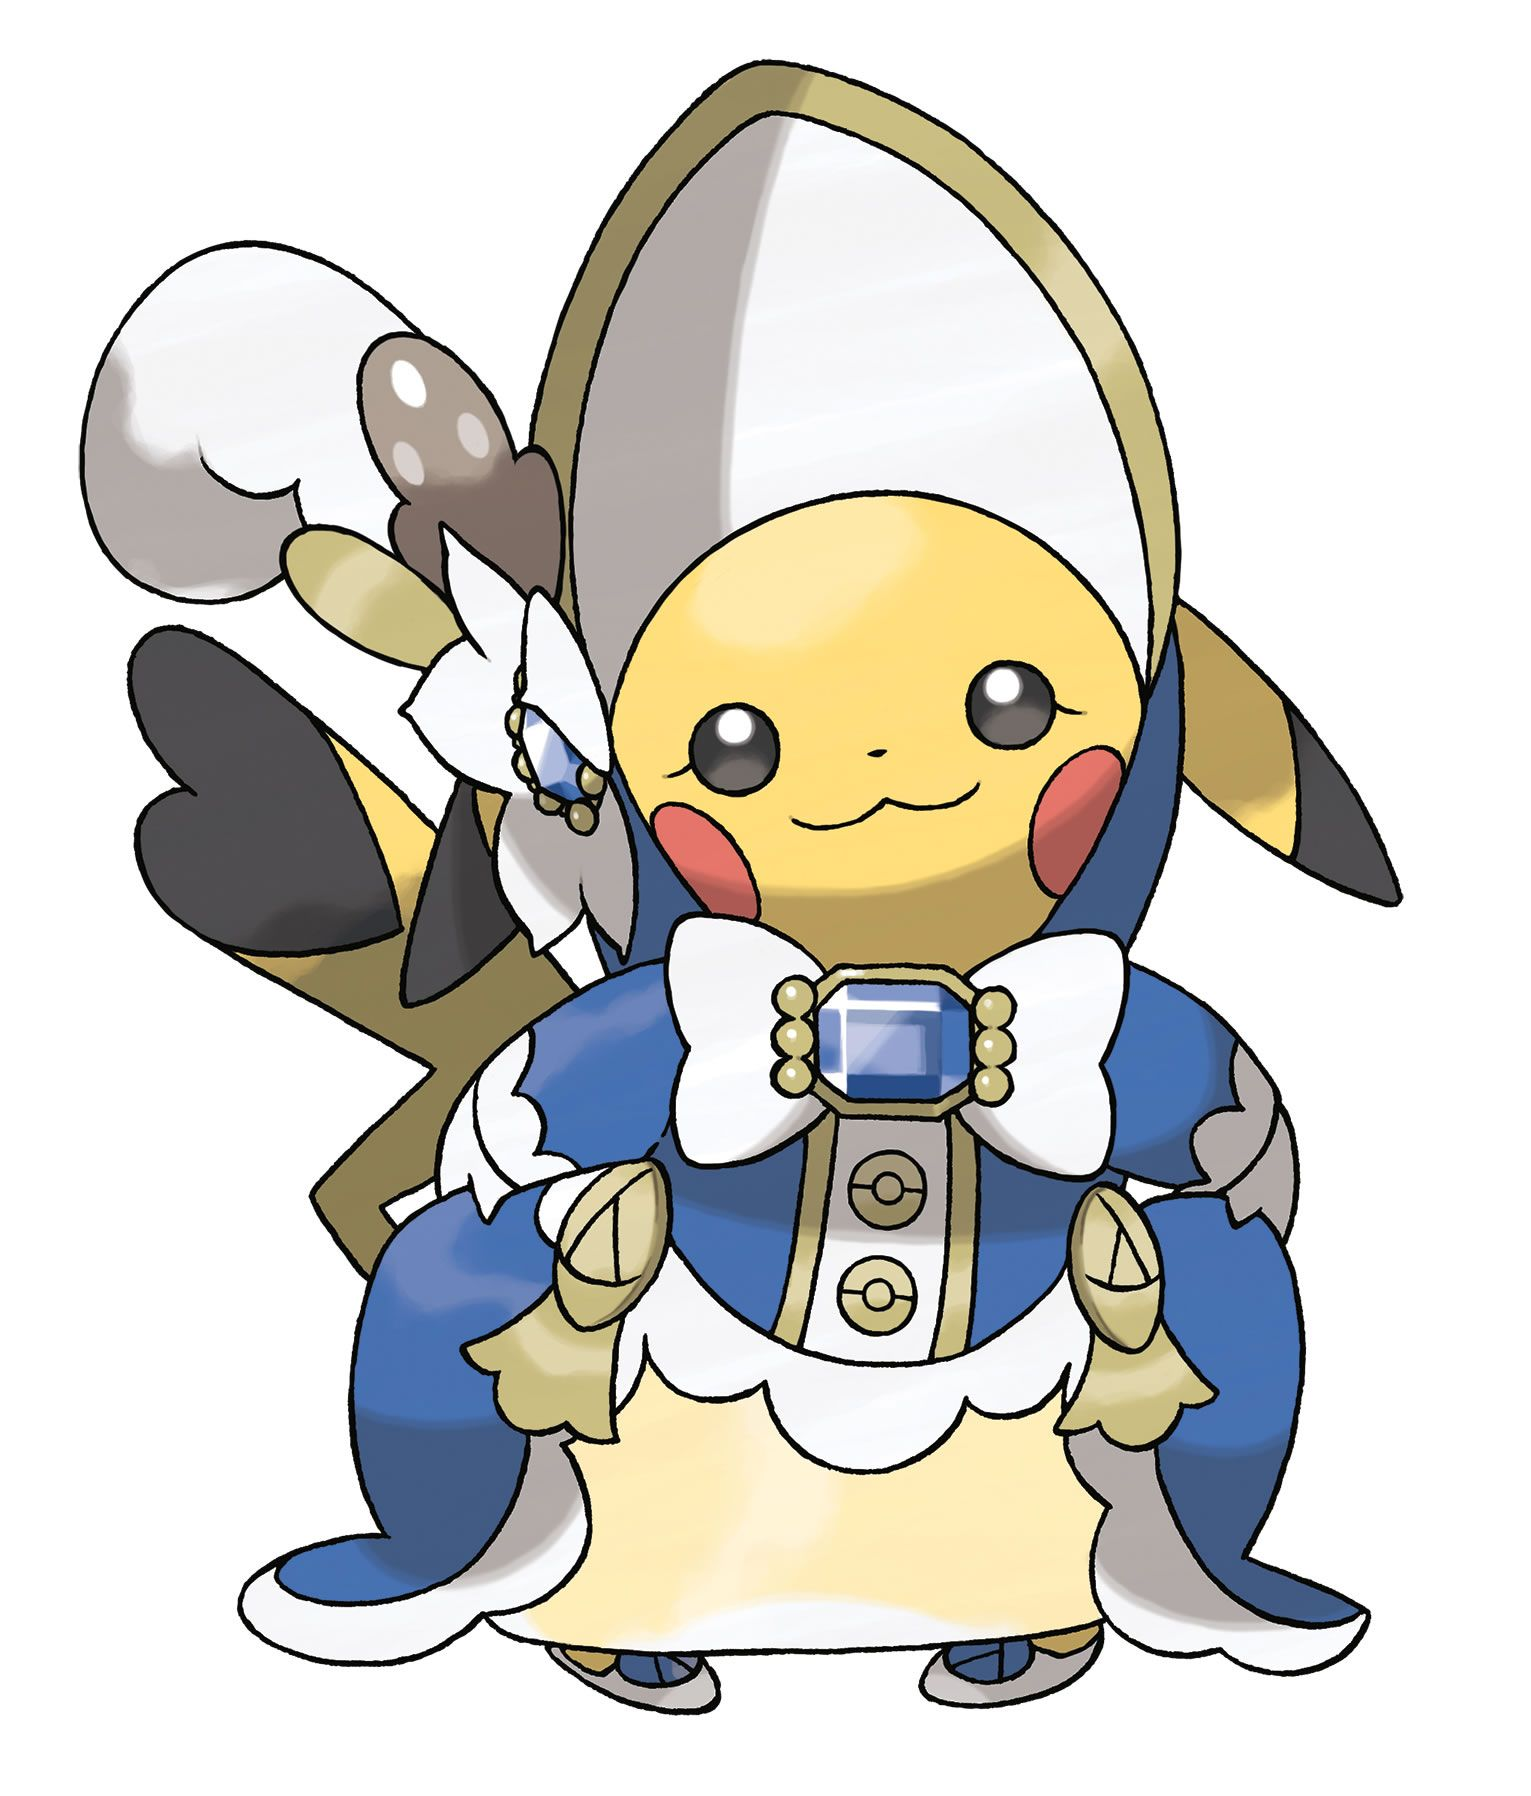 Pikachu cosplay? That's just one of the new features #Pokemon Omega Ruby/Alpha Sapphire